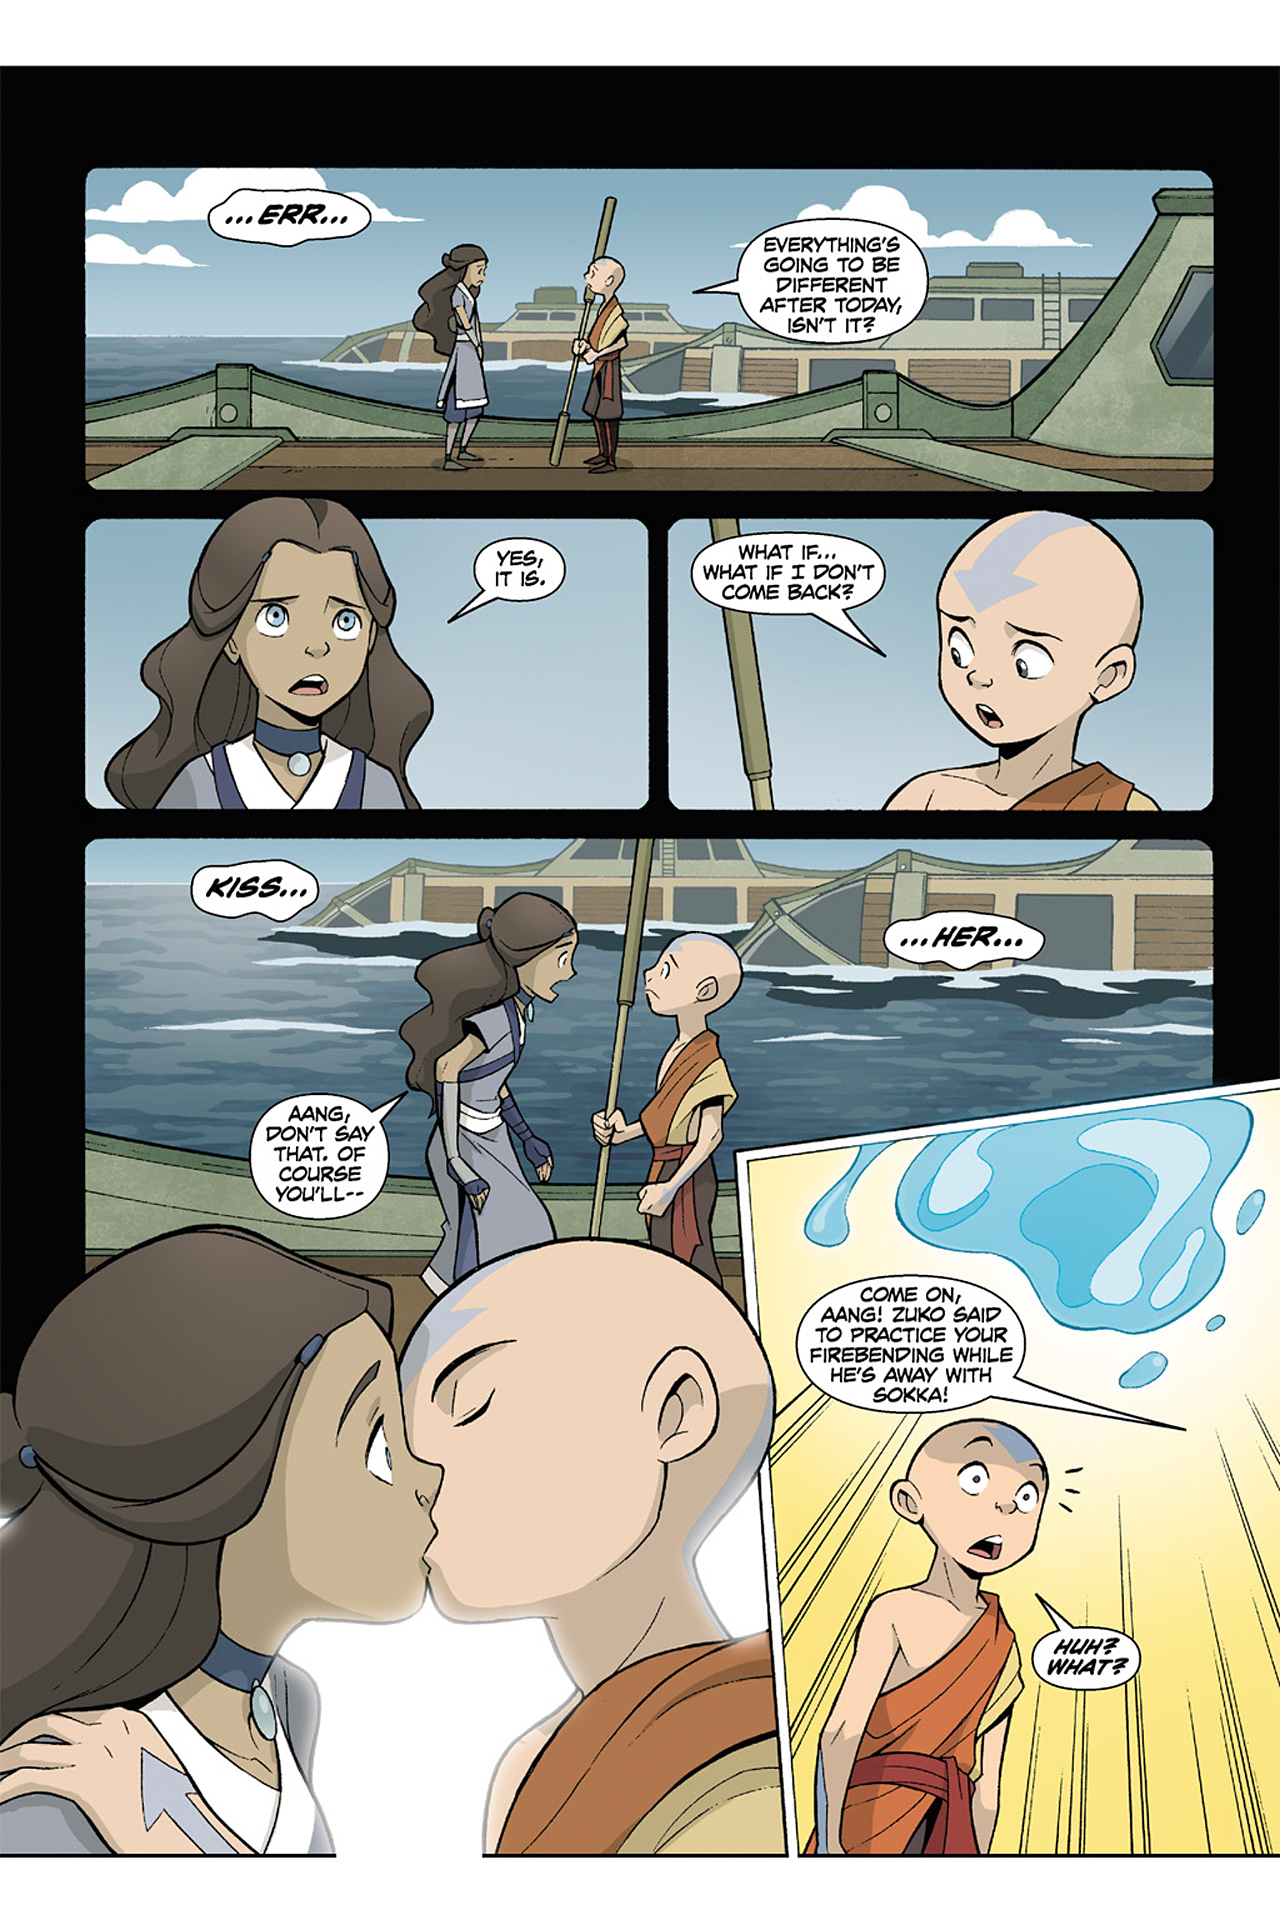 Nickelodeon Avatar: The Last Airbender - The Lost Adventures chap full pic 192